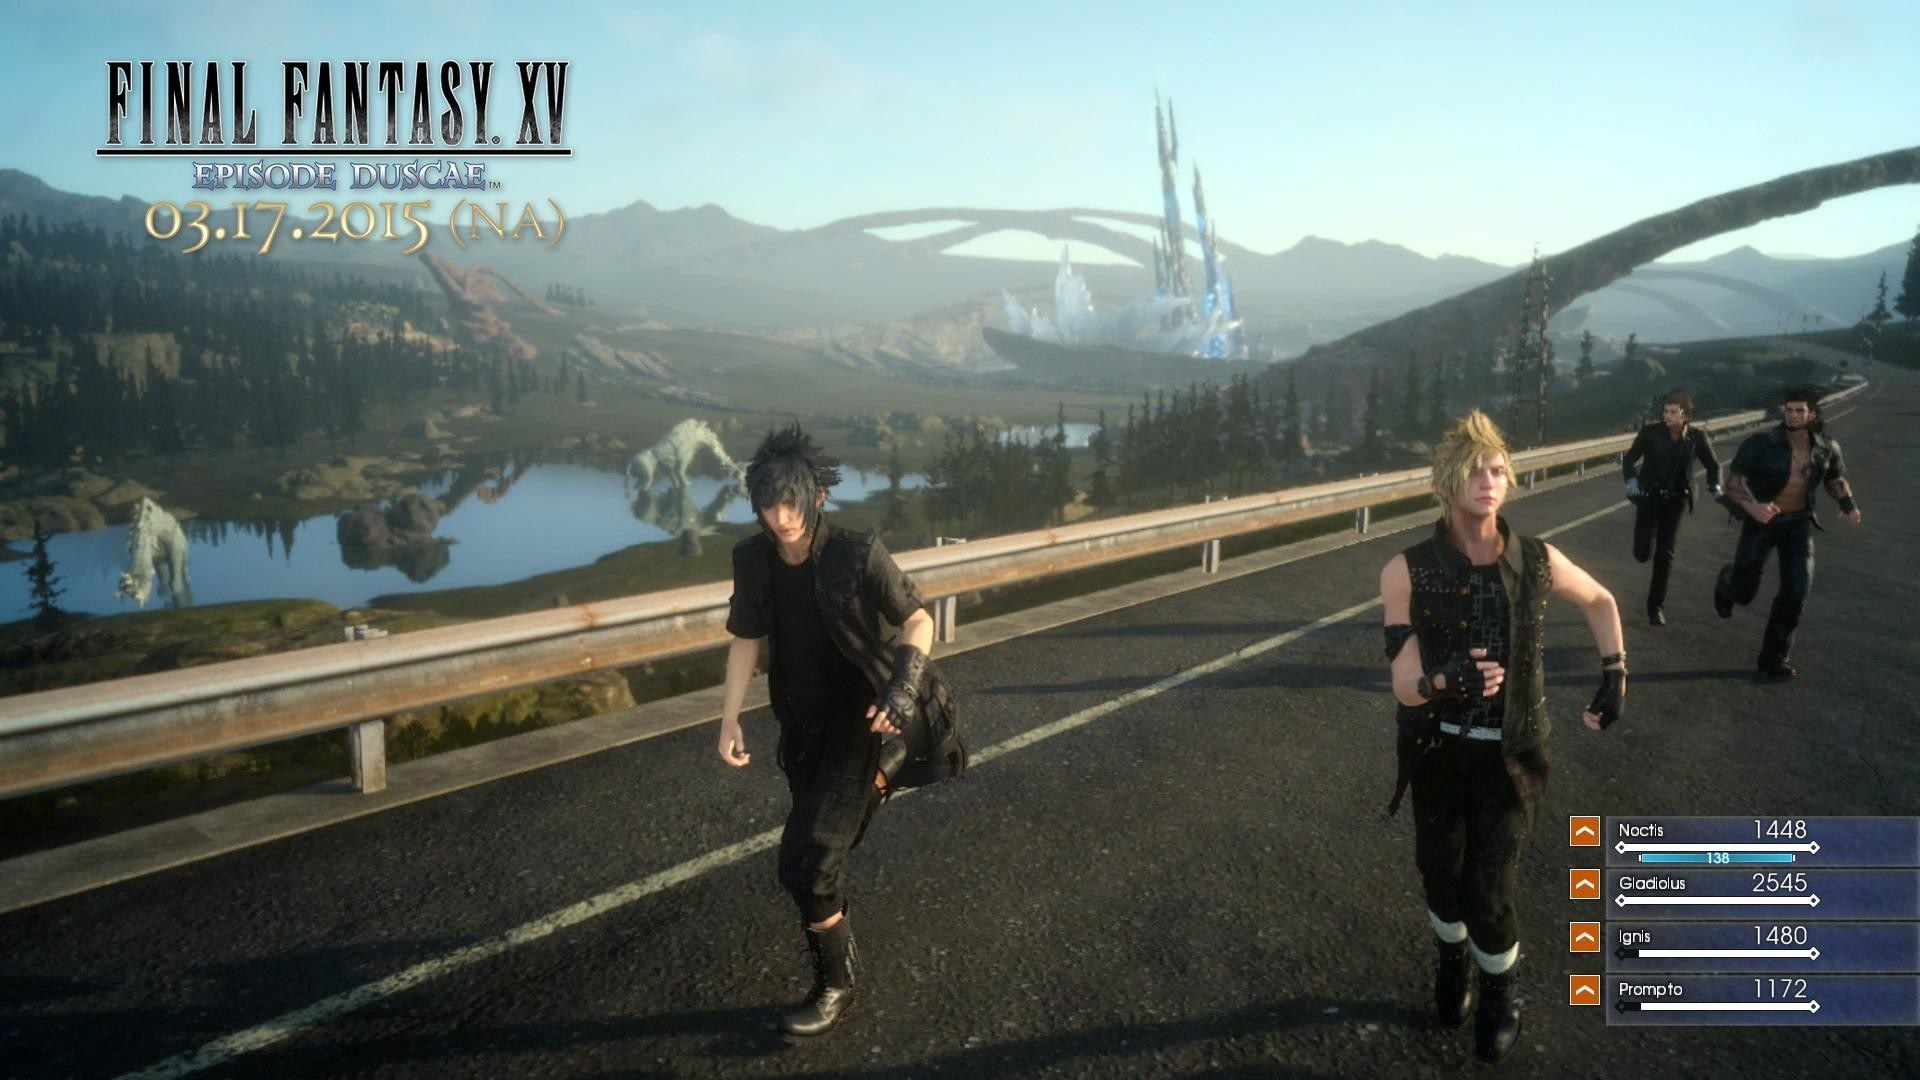 1920x1080 final fantasy xv wallpaper #128846. Resolation: 1920x1080 File Size: 268 KB